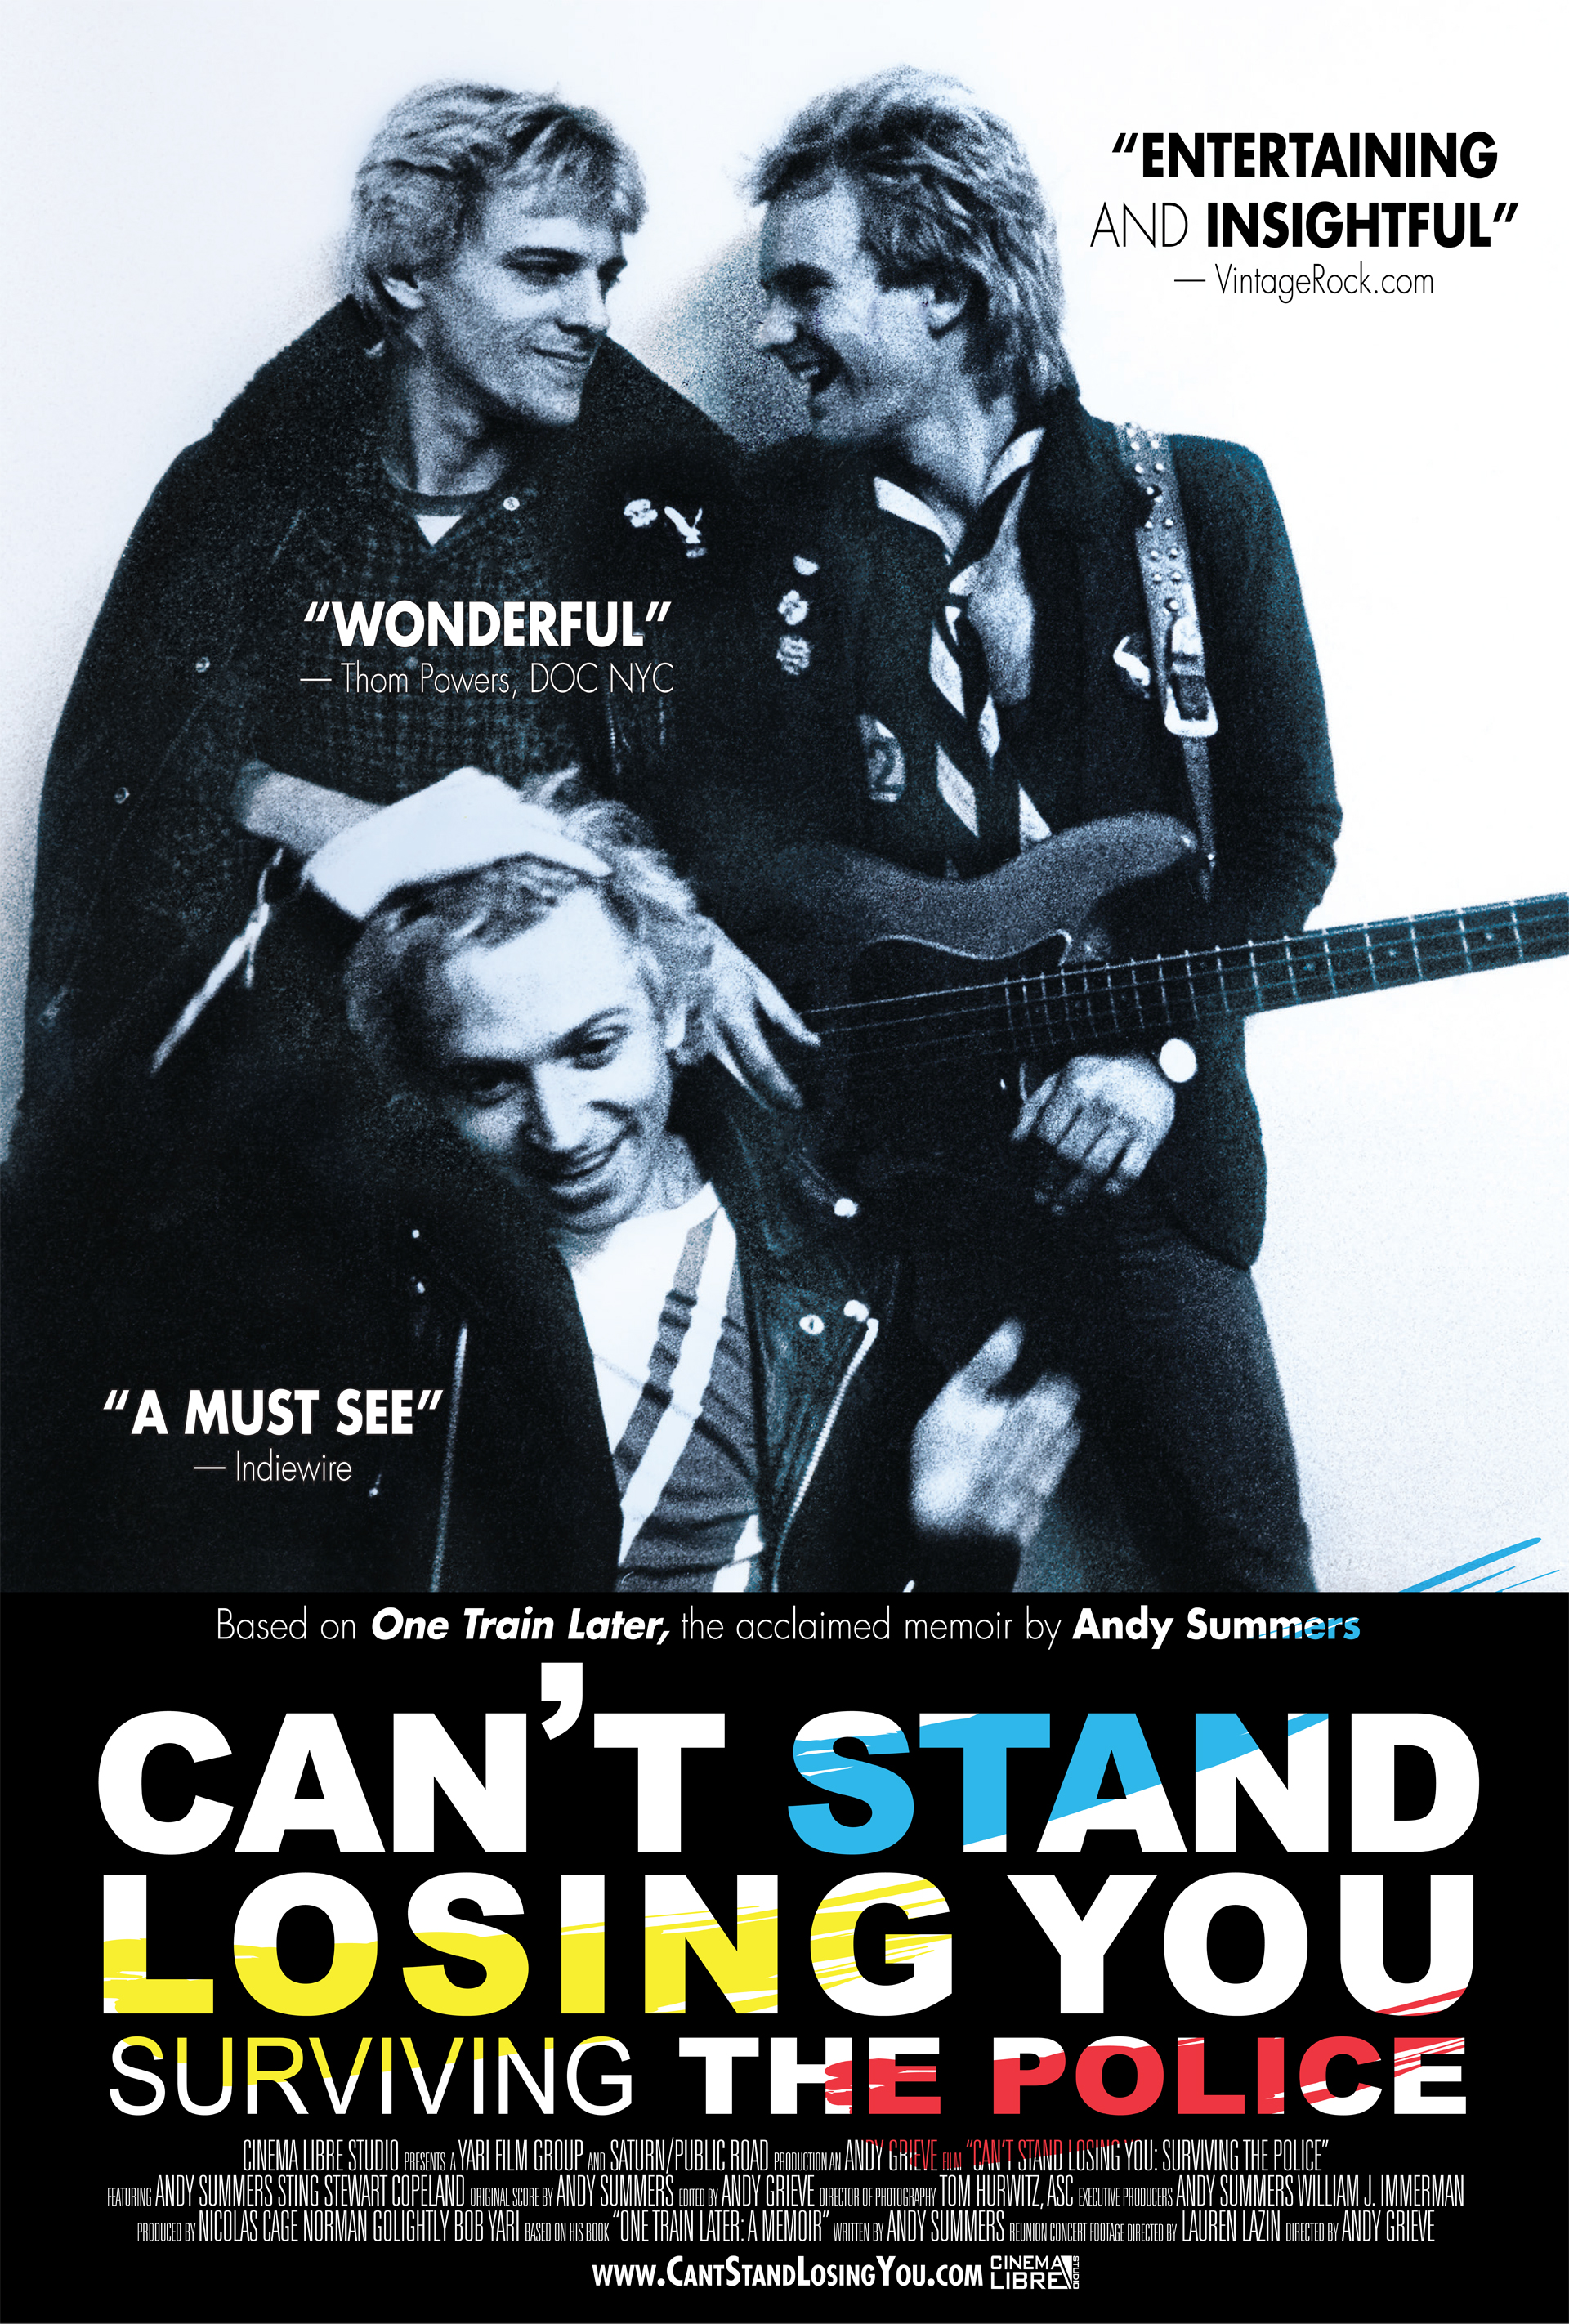 Can't Stand Losing You: Surviving the Police -- Signed CD Giveaway!